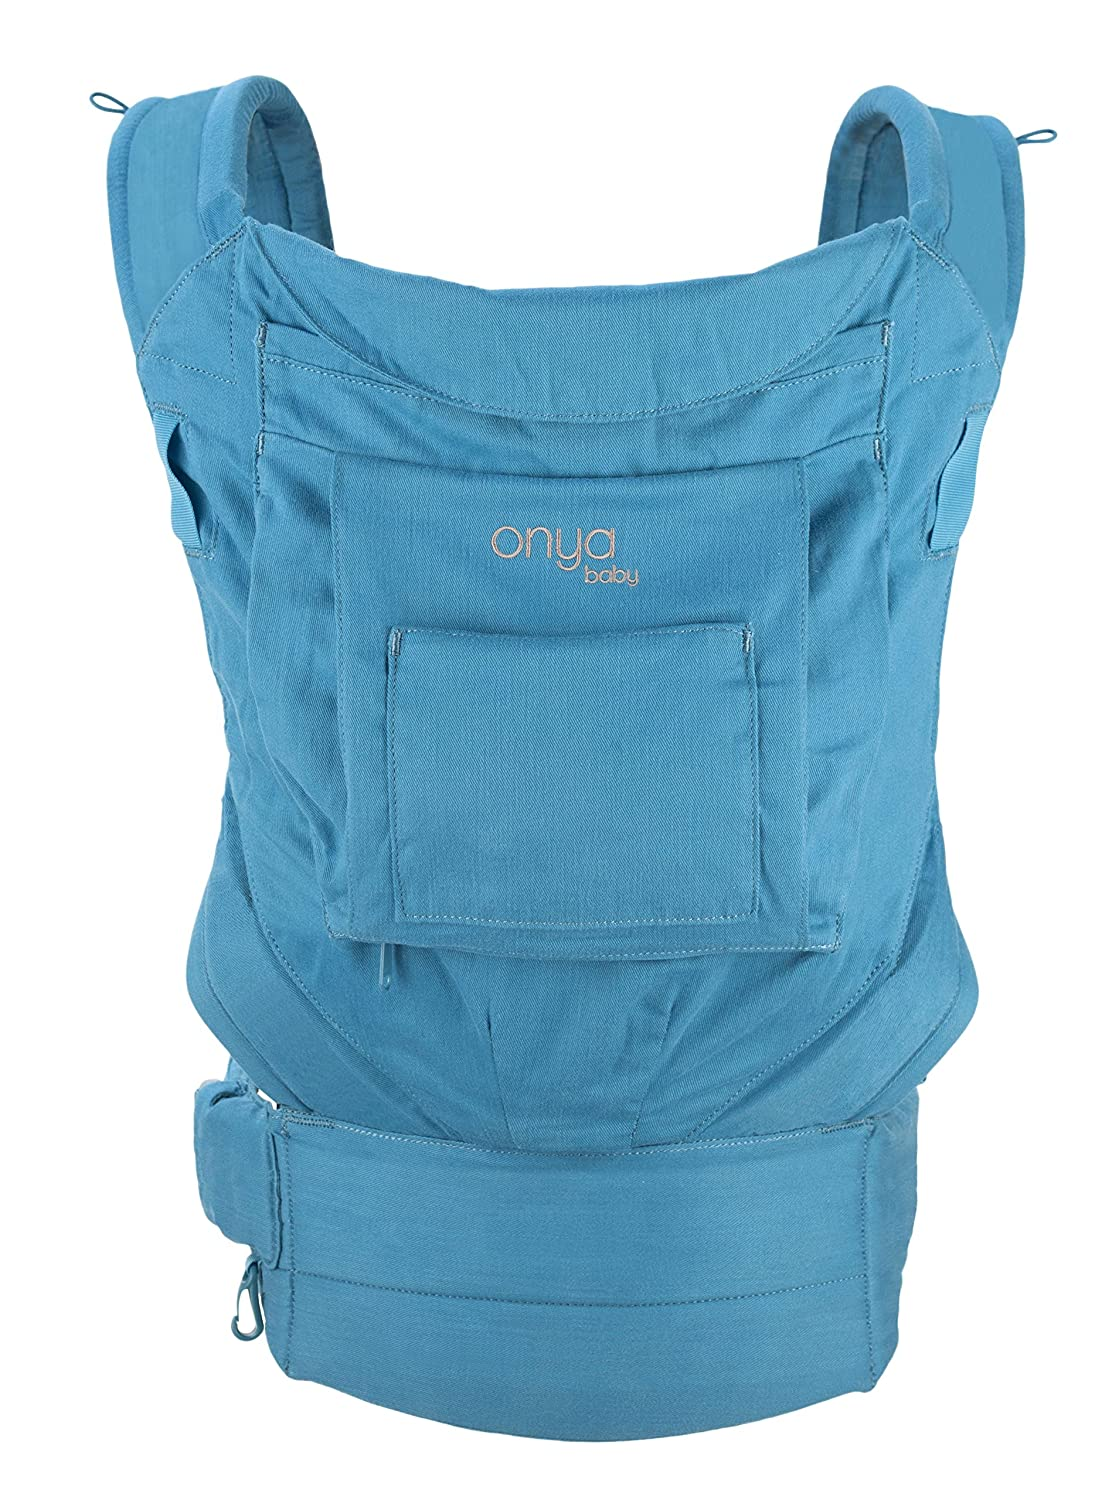 Onya Baby Cruiser Ergonomic Front and Back Infant to Toddler Carrier - Lapis Blue